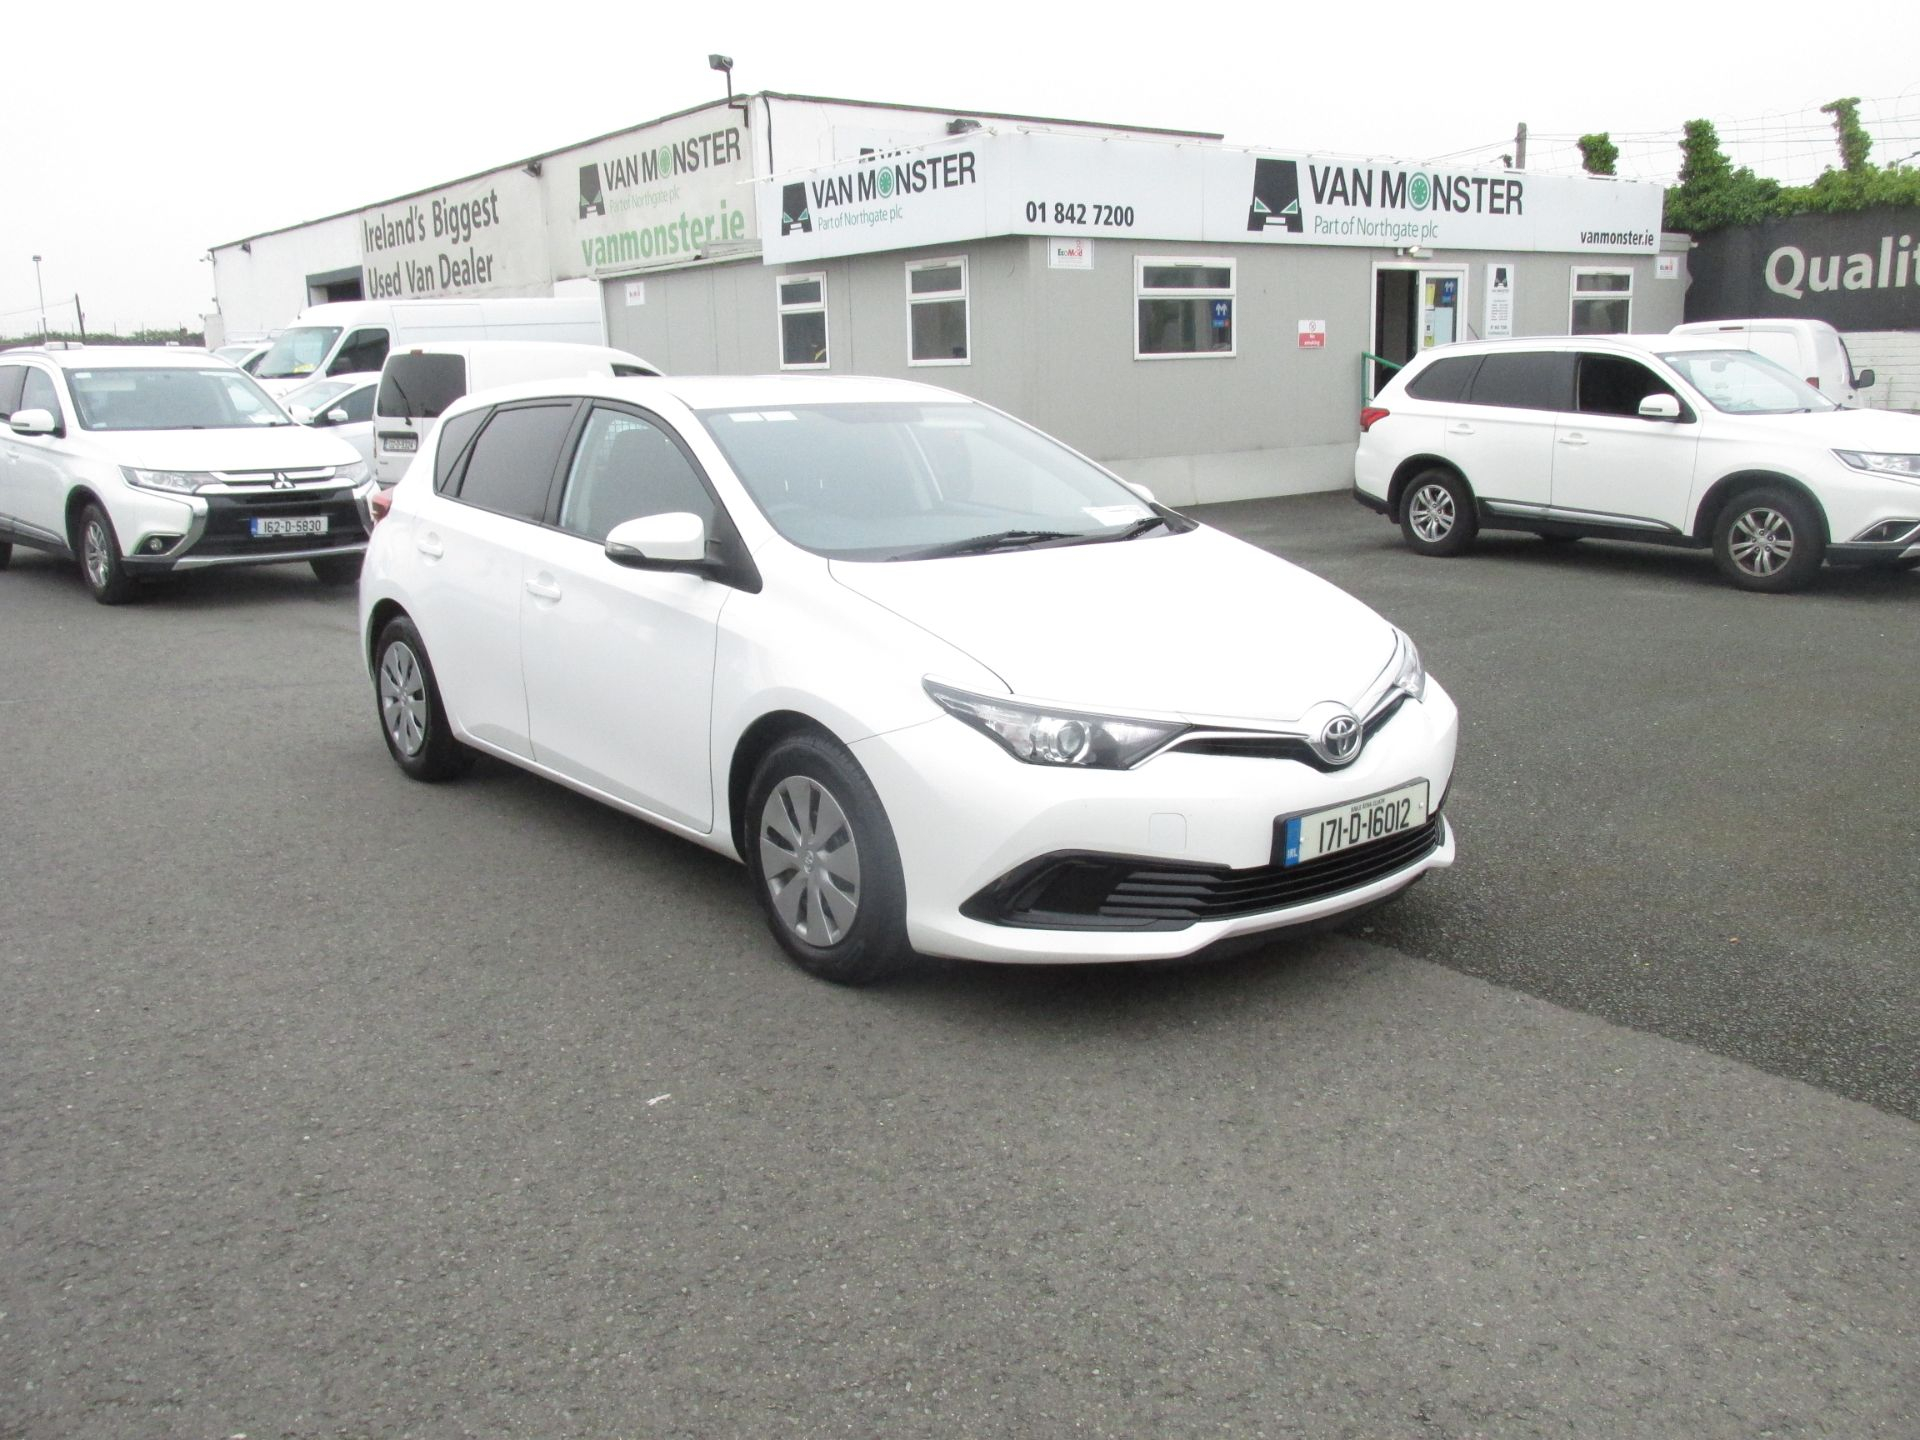 2017 Toyota Auris VAN 1.4 D4D Terra 4DR click and collect call sales for more info (171D16012)